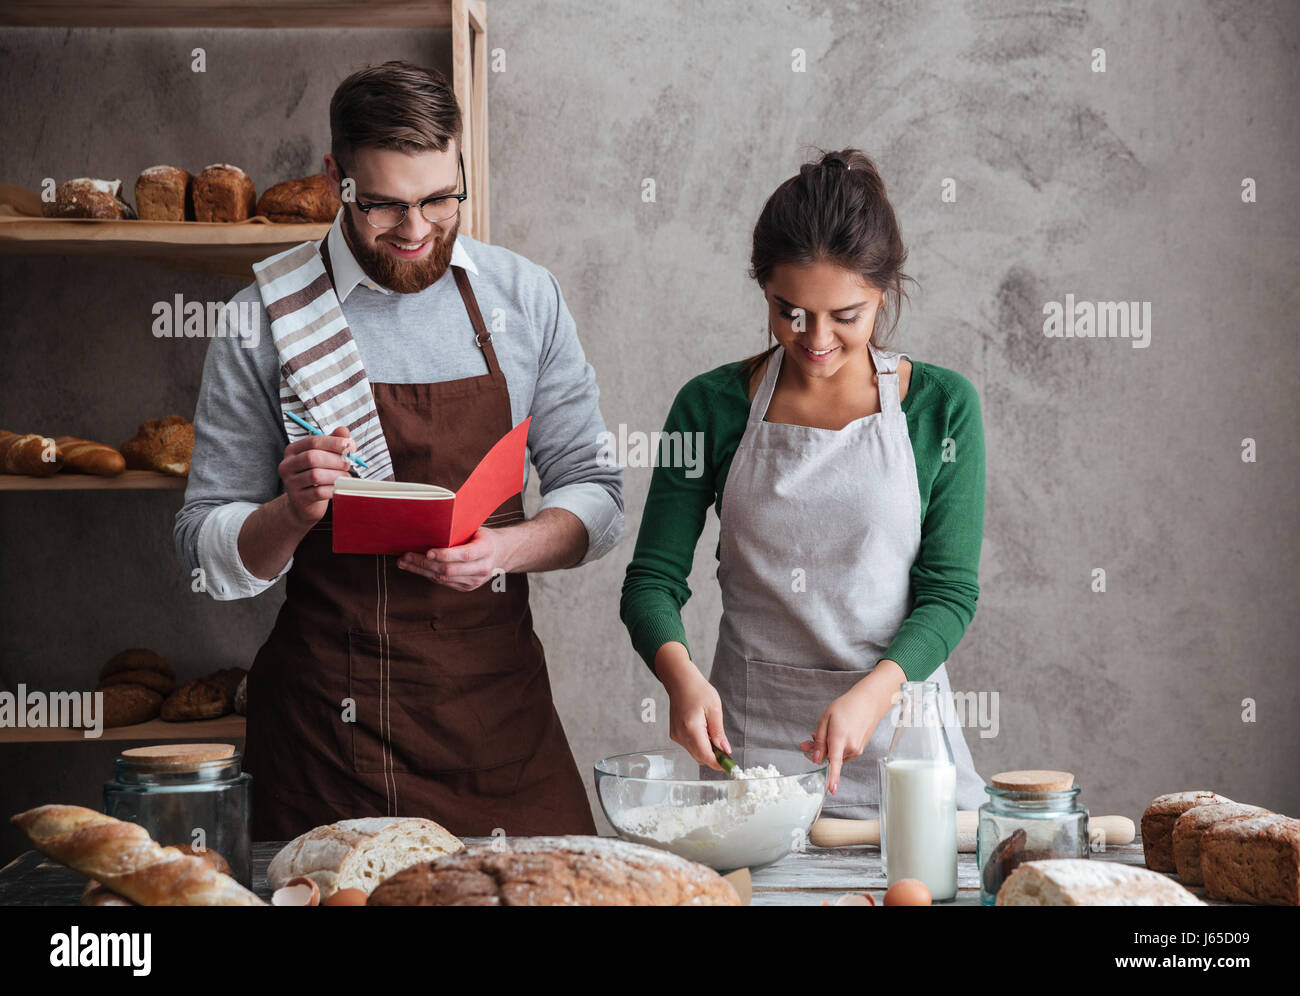 Young smiling woman under sensitive guidance of her man listening recipe of bread and cooking it in kitchen Stock Photo